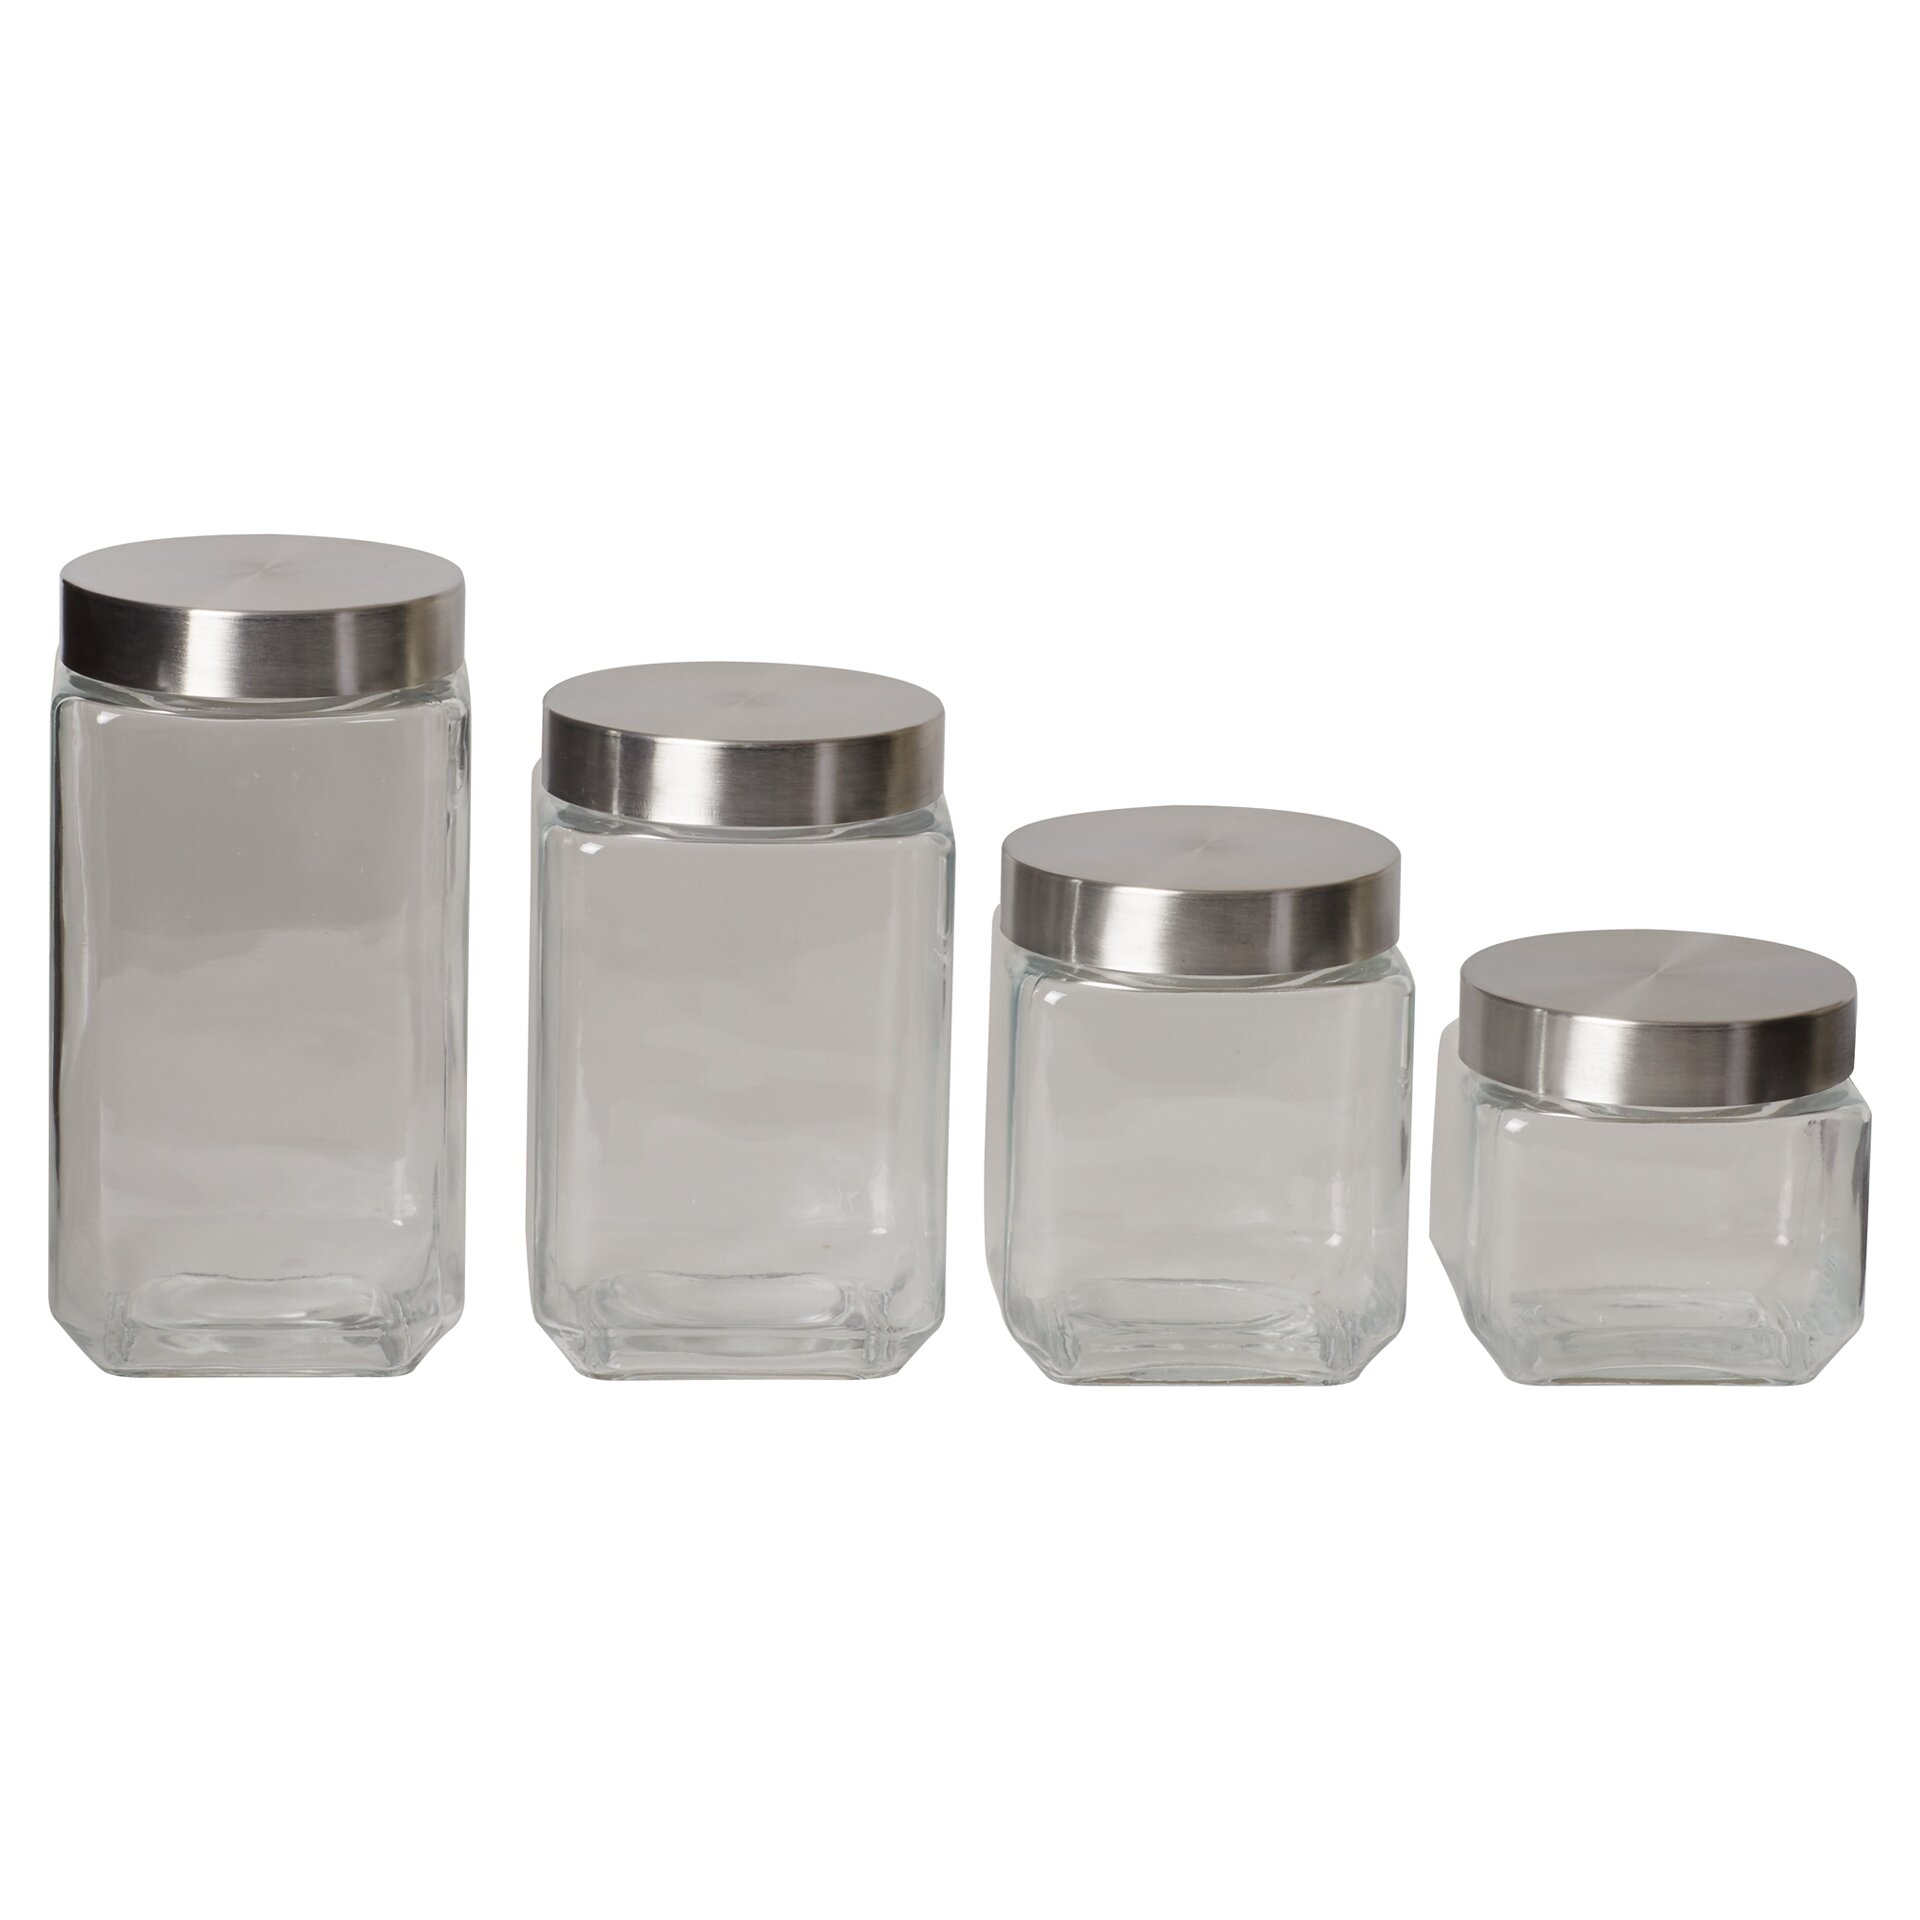 wayfair basics wayfair basics 4 piece square glass 54 oz stackable square canister